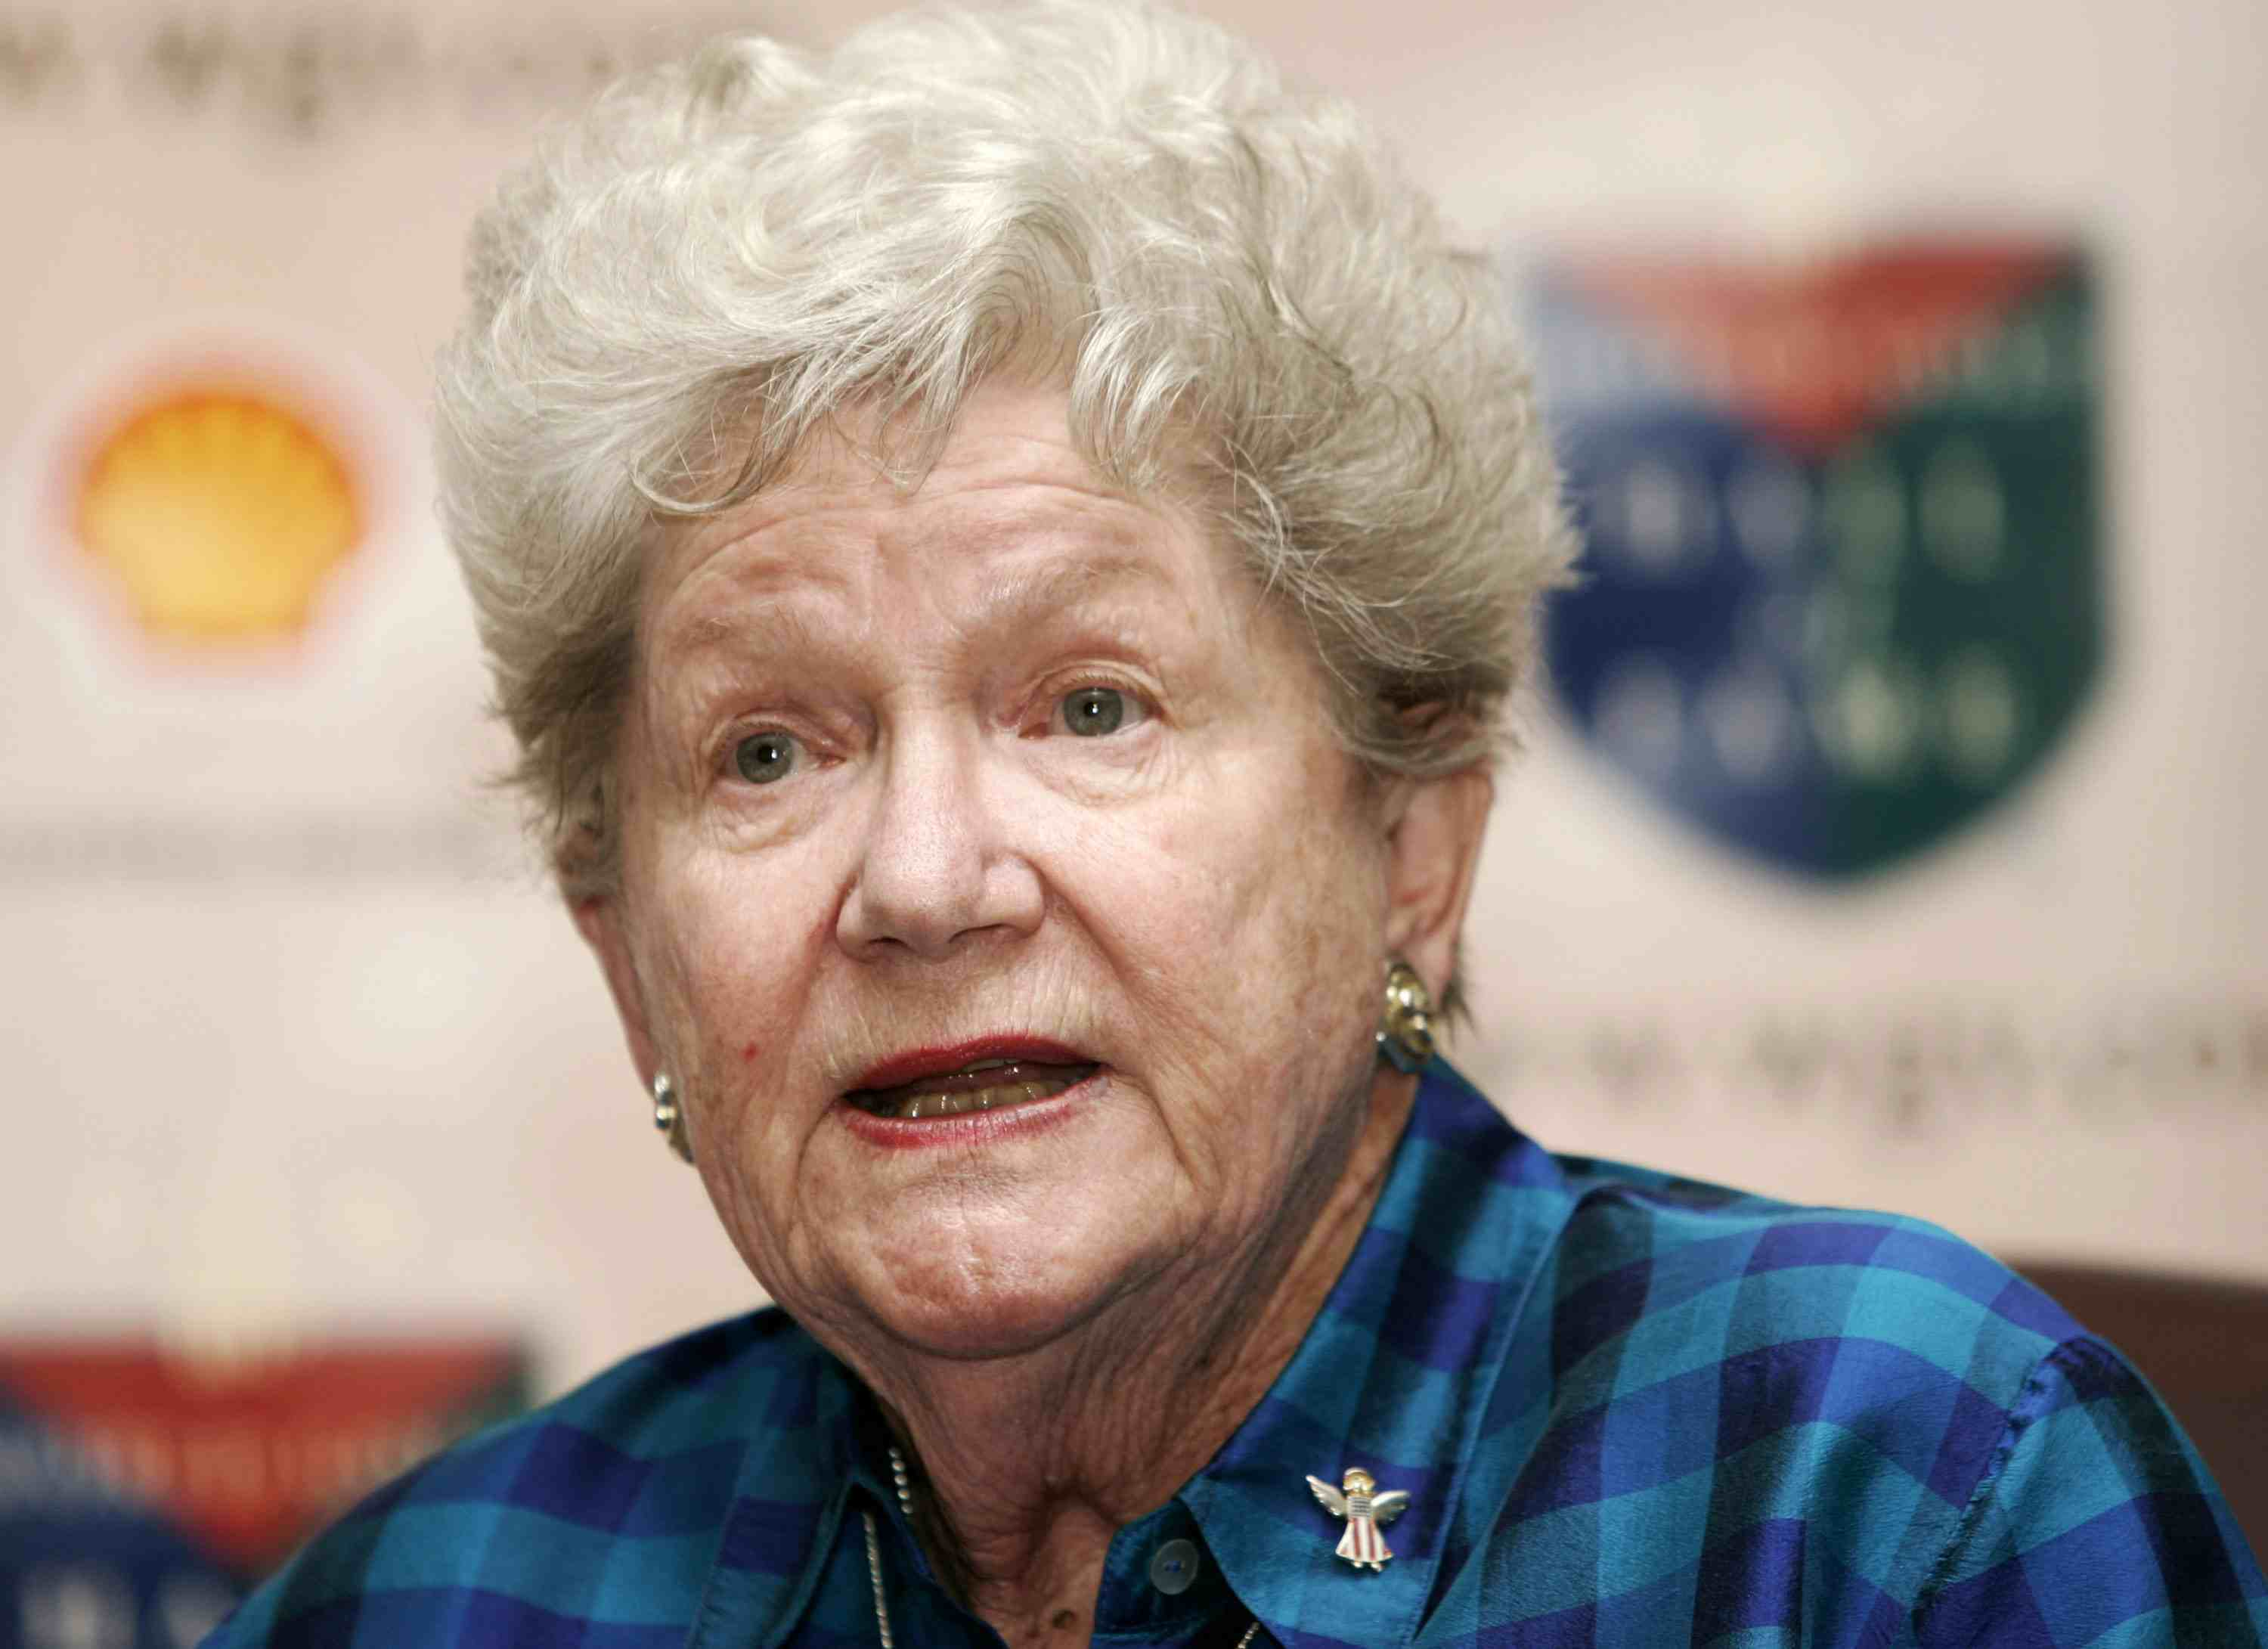 Marilynn Smith speaks to the media prior to the Induction Ceremony at the World Golf Hall of Fame located at the World Golf Village in St. Augustine, Florida on October 30, 2006